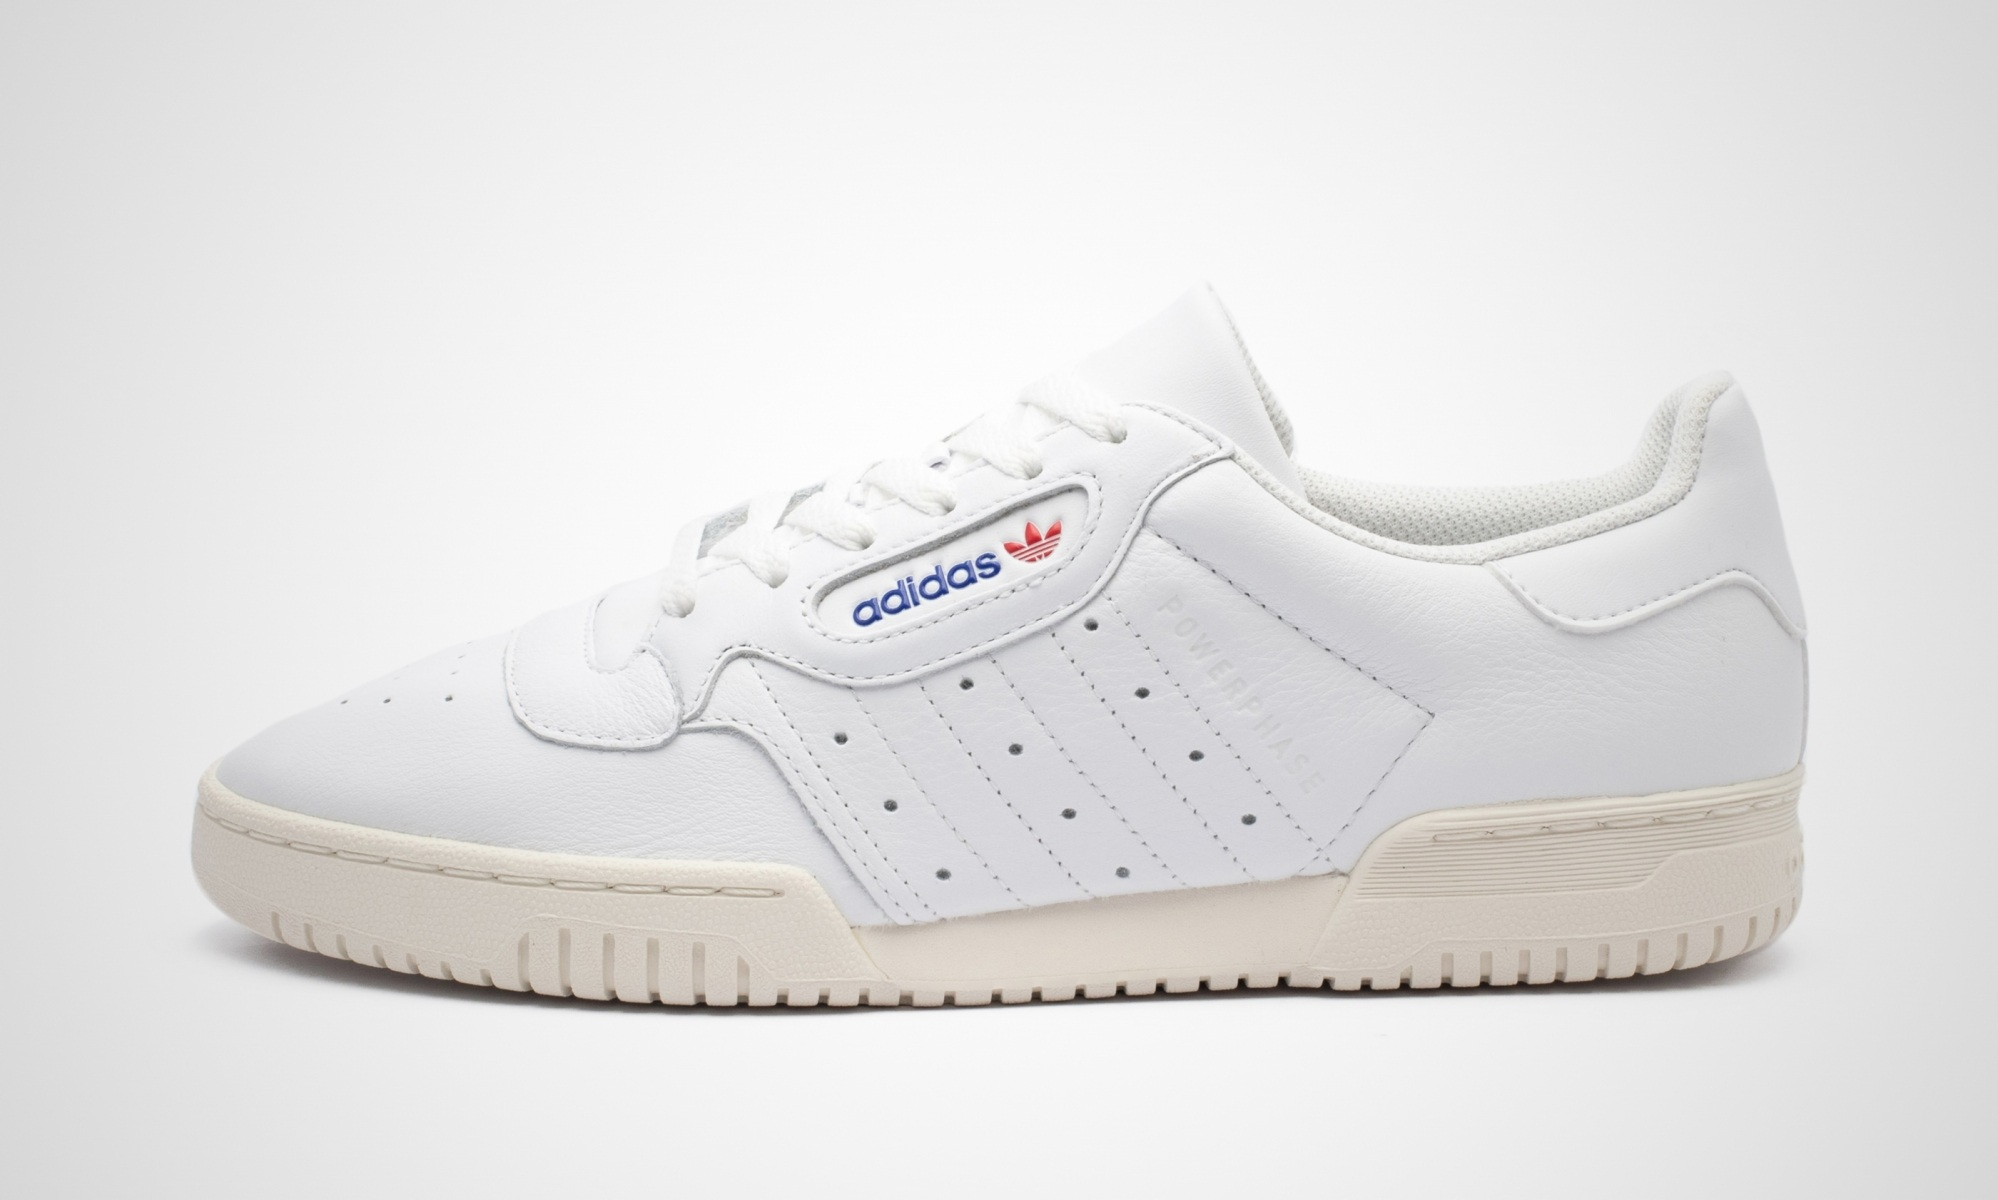 83356d41cc11a0 adidas Powerphase Off White